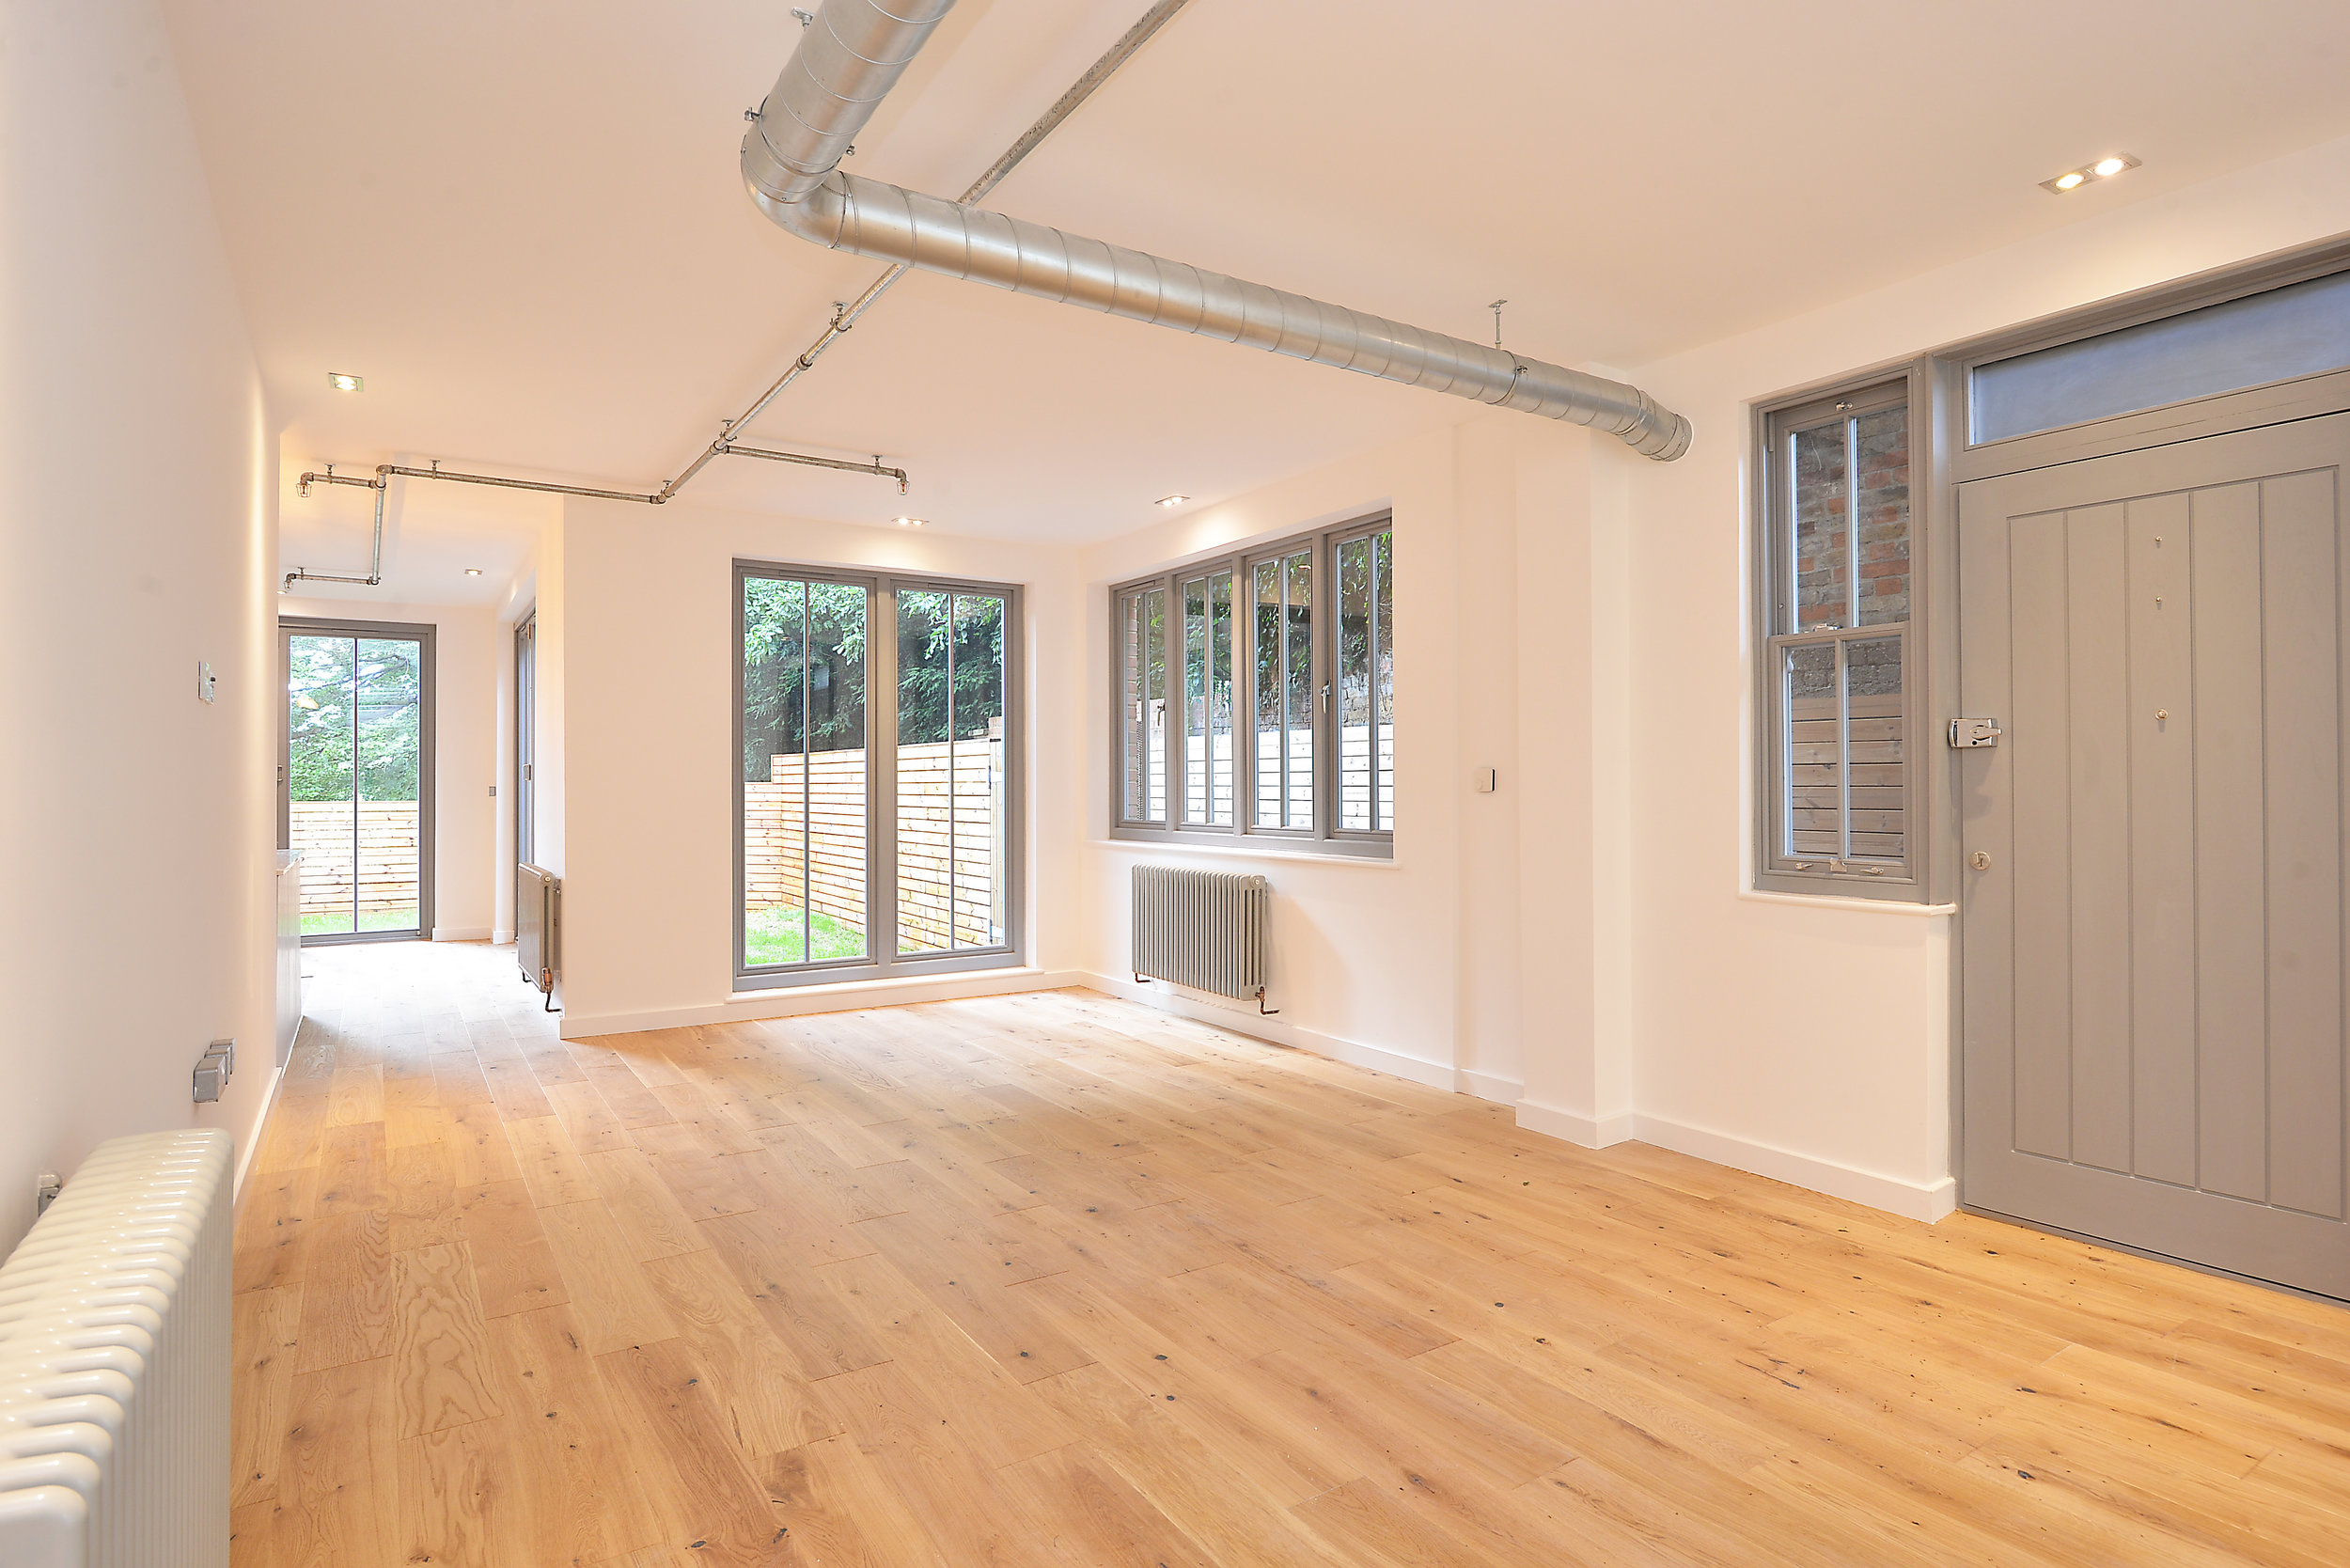 1 HYACINTH HOUSE, SYDENHAM HILL - A 2 bedroom apartment based in the leafy suburbs of Sydenham Hill, London.